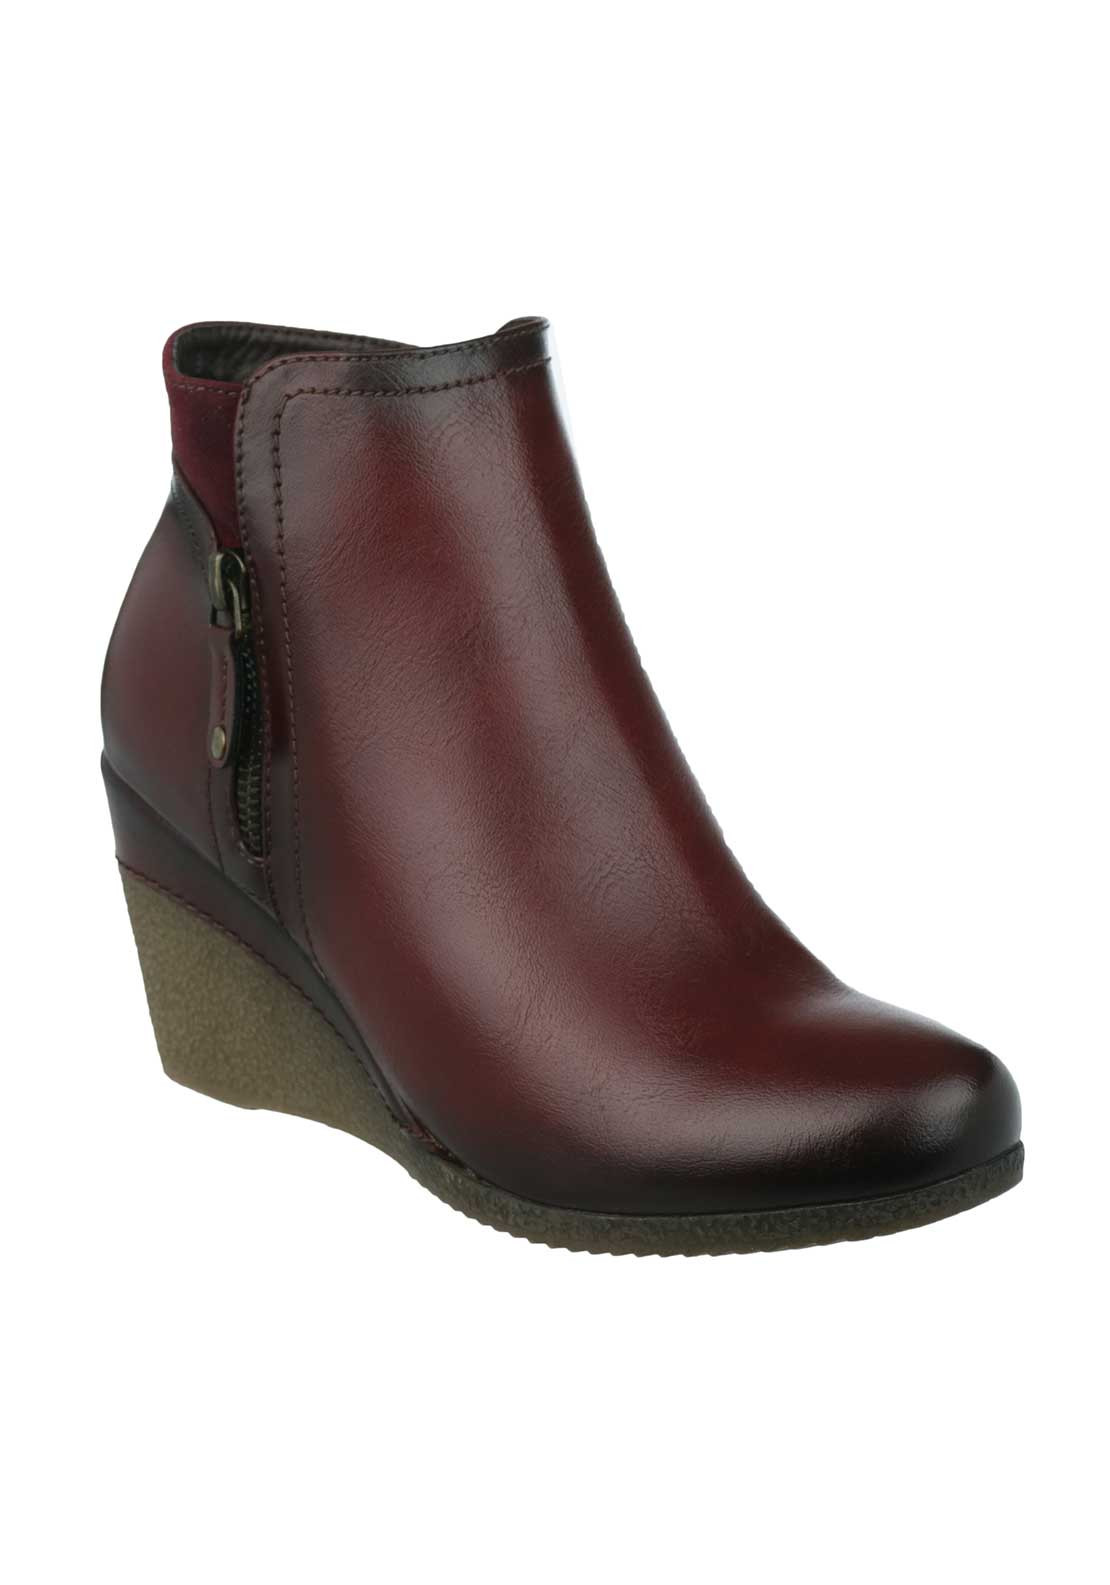 Susst Womens Breezy Wedged Ankle Boots, Wine